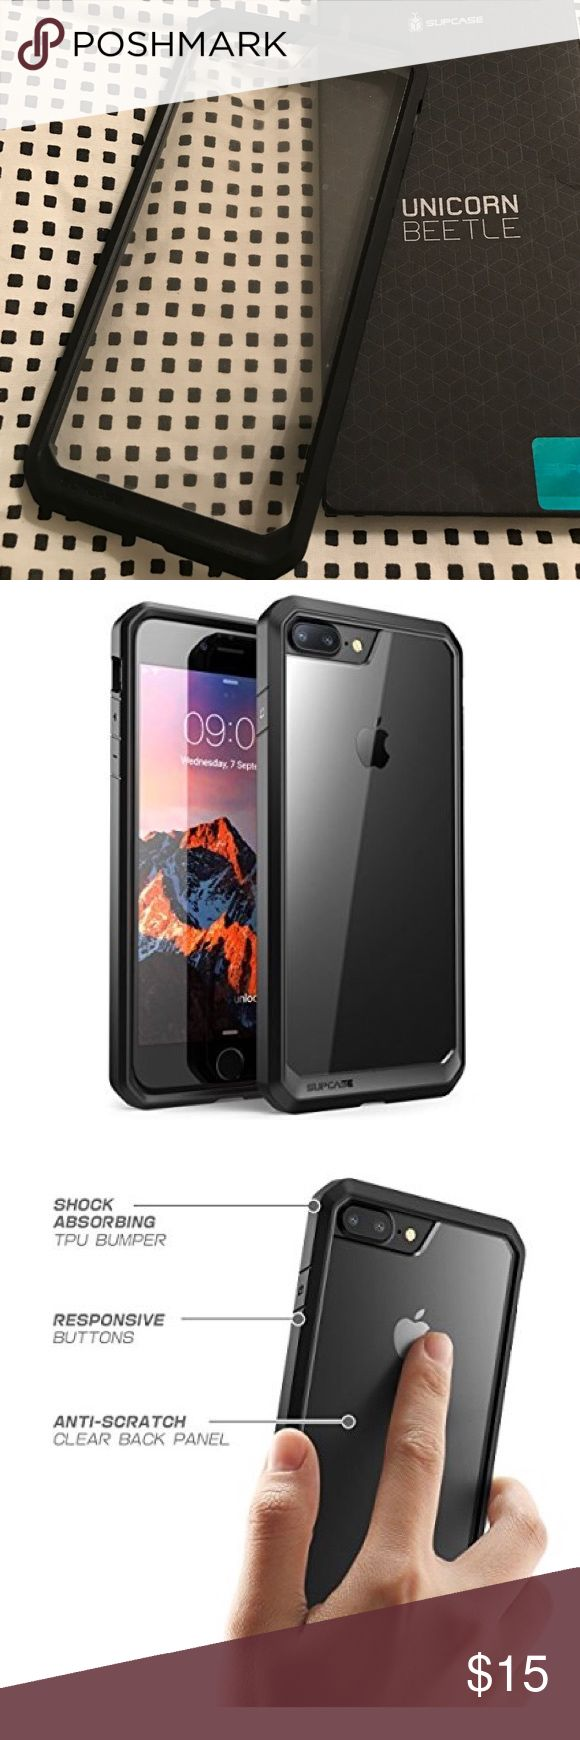 iPhone 7 Plus case clear & black supcase New never used iPhone 7 Plus case clear & black unicorn beetle supcase. I ordered the iPhone 7 case but received this one for the plus instead. Bought for 16.99 online but I have no need for it since I have the regular 7. I ended up buying the case for the 7 again and luckily got the right one this time and I love it. Very sturdy and protects phone well  Accessories Phone Cases